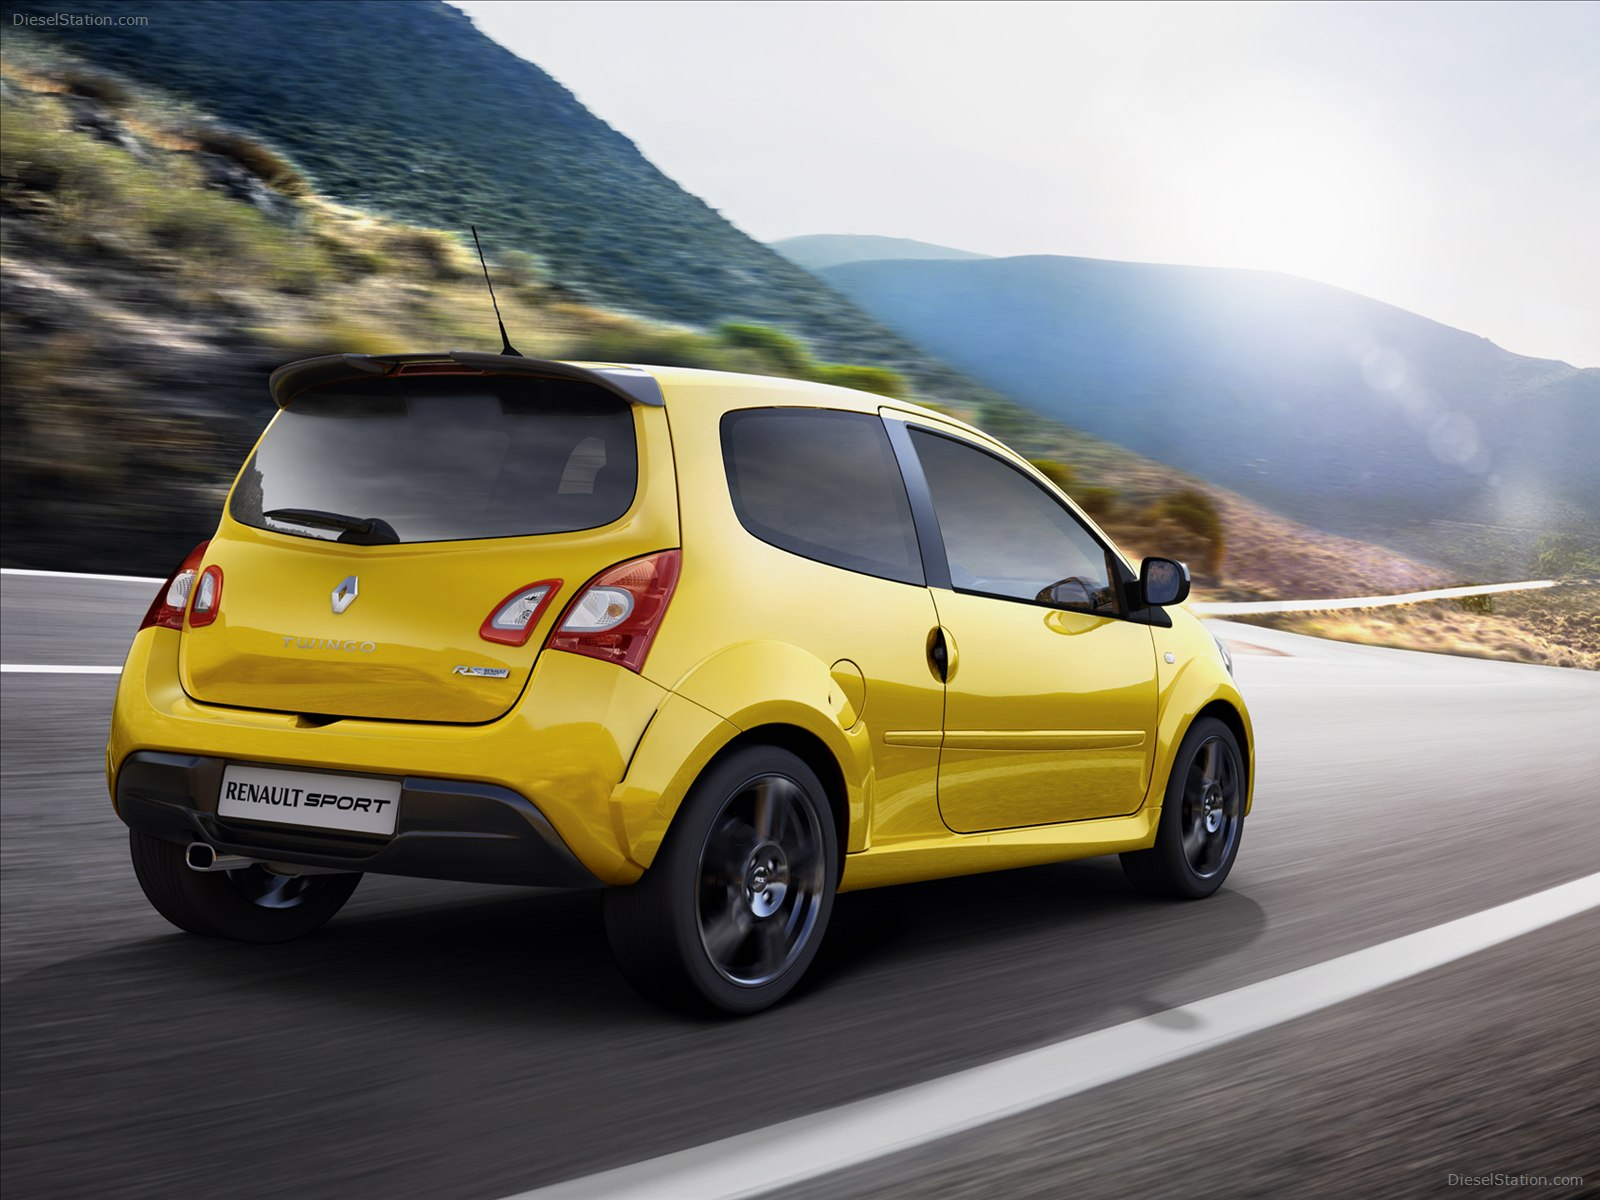 2012 Renault Twingo Hatchback 3-door